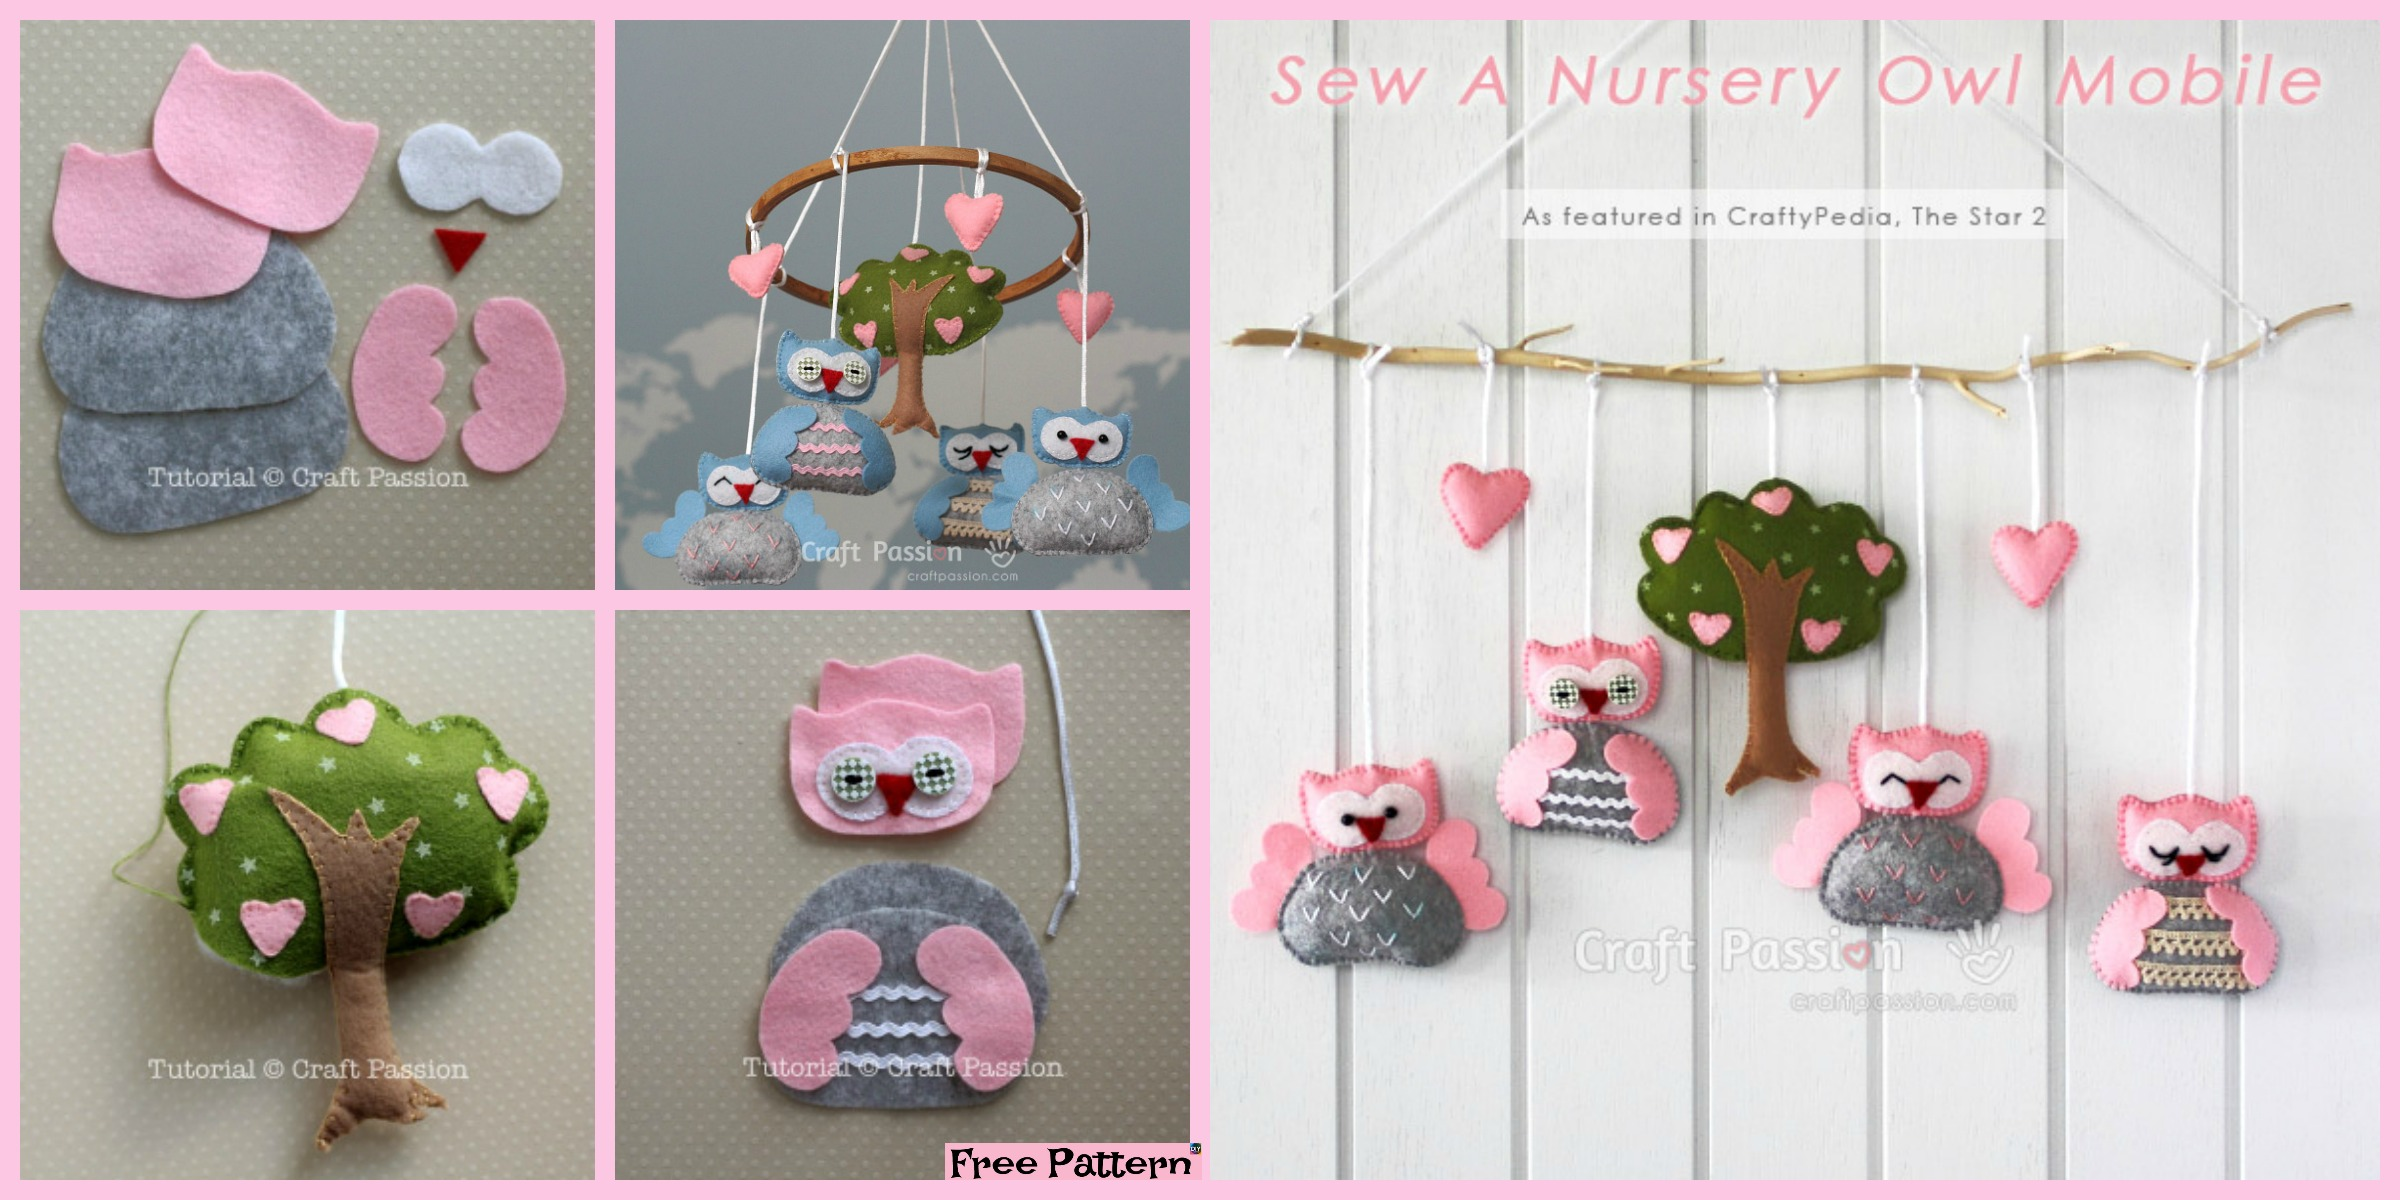 DIY Nursery Owl Mobile – Free Sewing Pattern